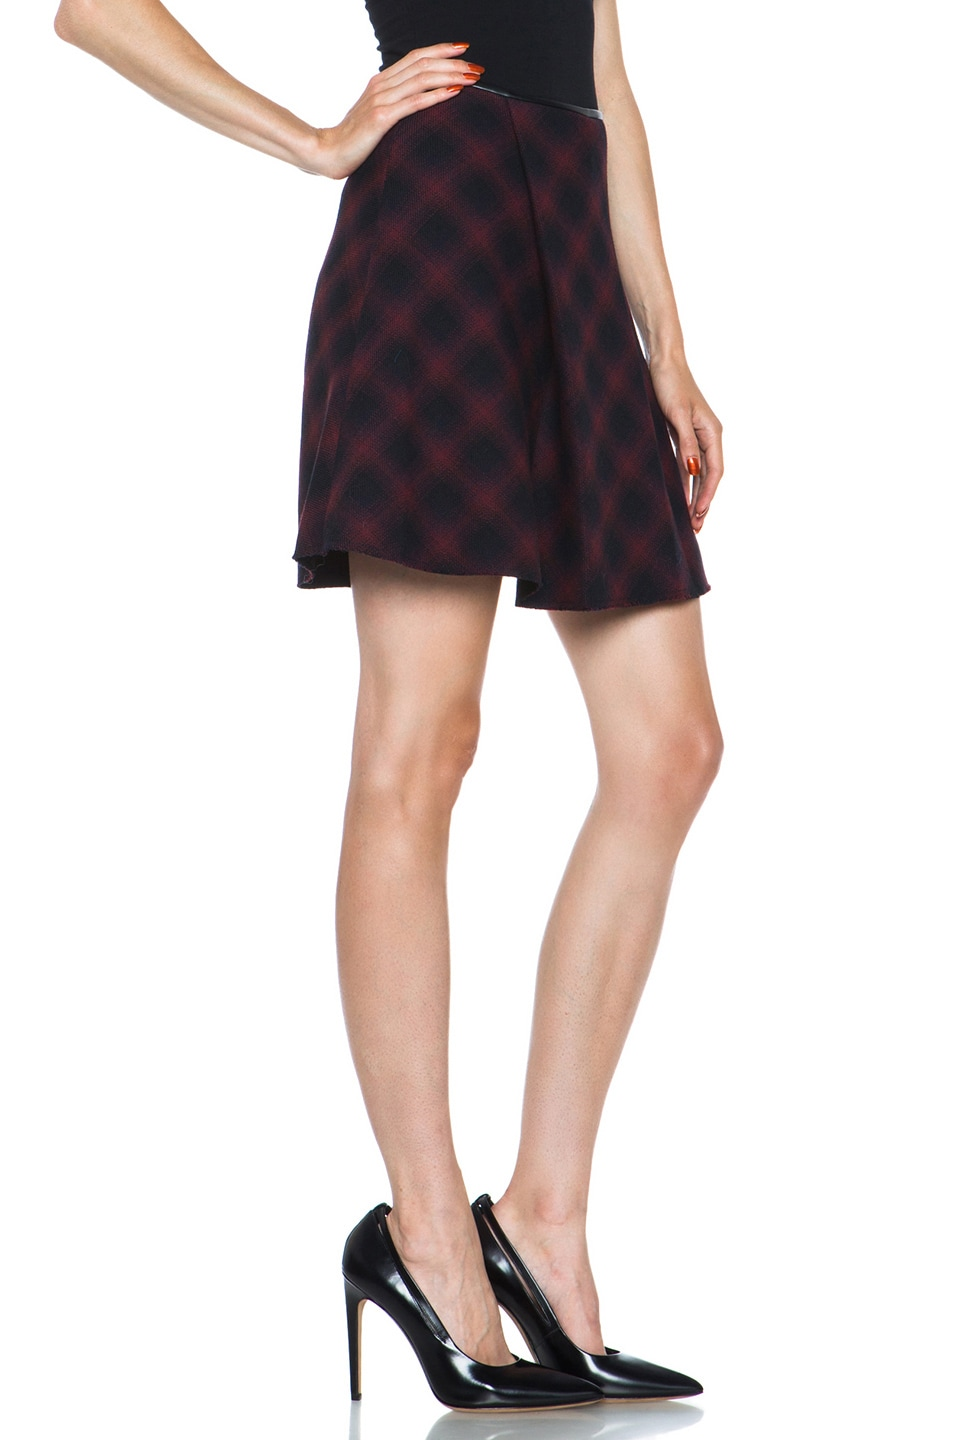 Image 3 of 3.1 phillip lim Sculpted Flare Wool-Blend Skirt in Navy Multi